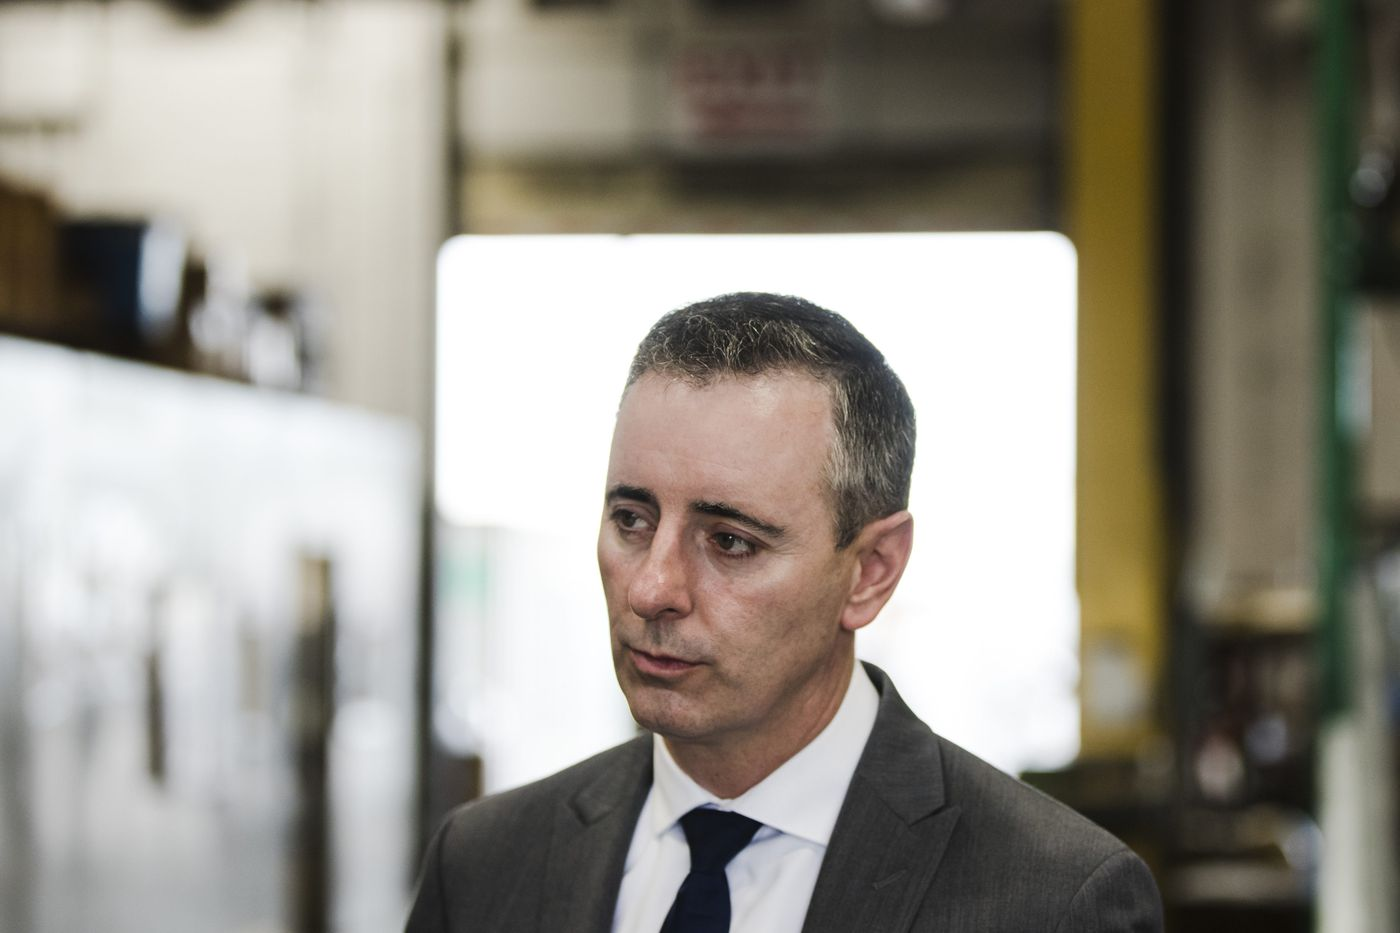 In misleading ad, Rep. Brian Fitzpatrick ties Dem opponent to cop-killer Mumia Abu-Jamal